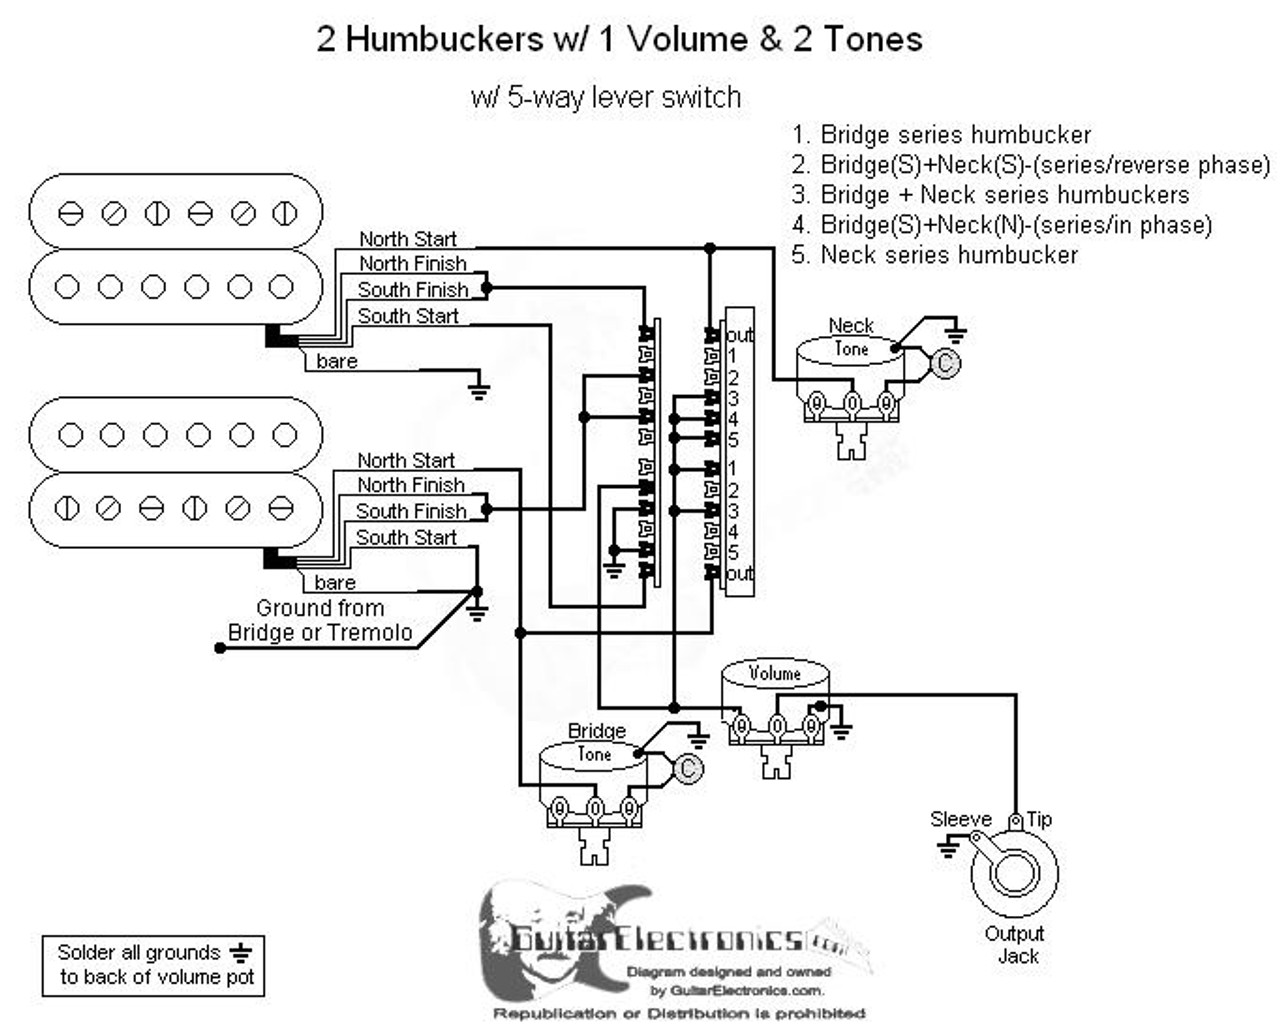 medium resolution of fender wiring schematic 2 pickups 1 volume 2 tone 5 way switch 2 humbuckers 5 way lever switch 1 volume 2 tone 03wd2hh5l12 03 46181 1470694495 jpg c